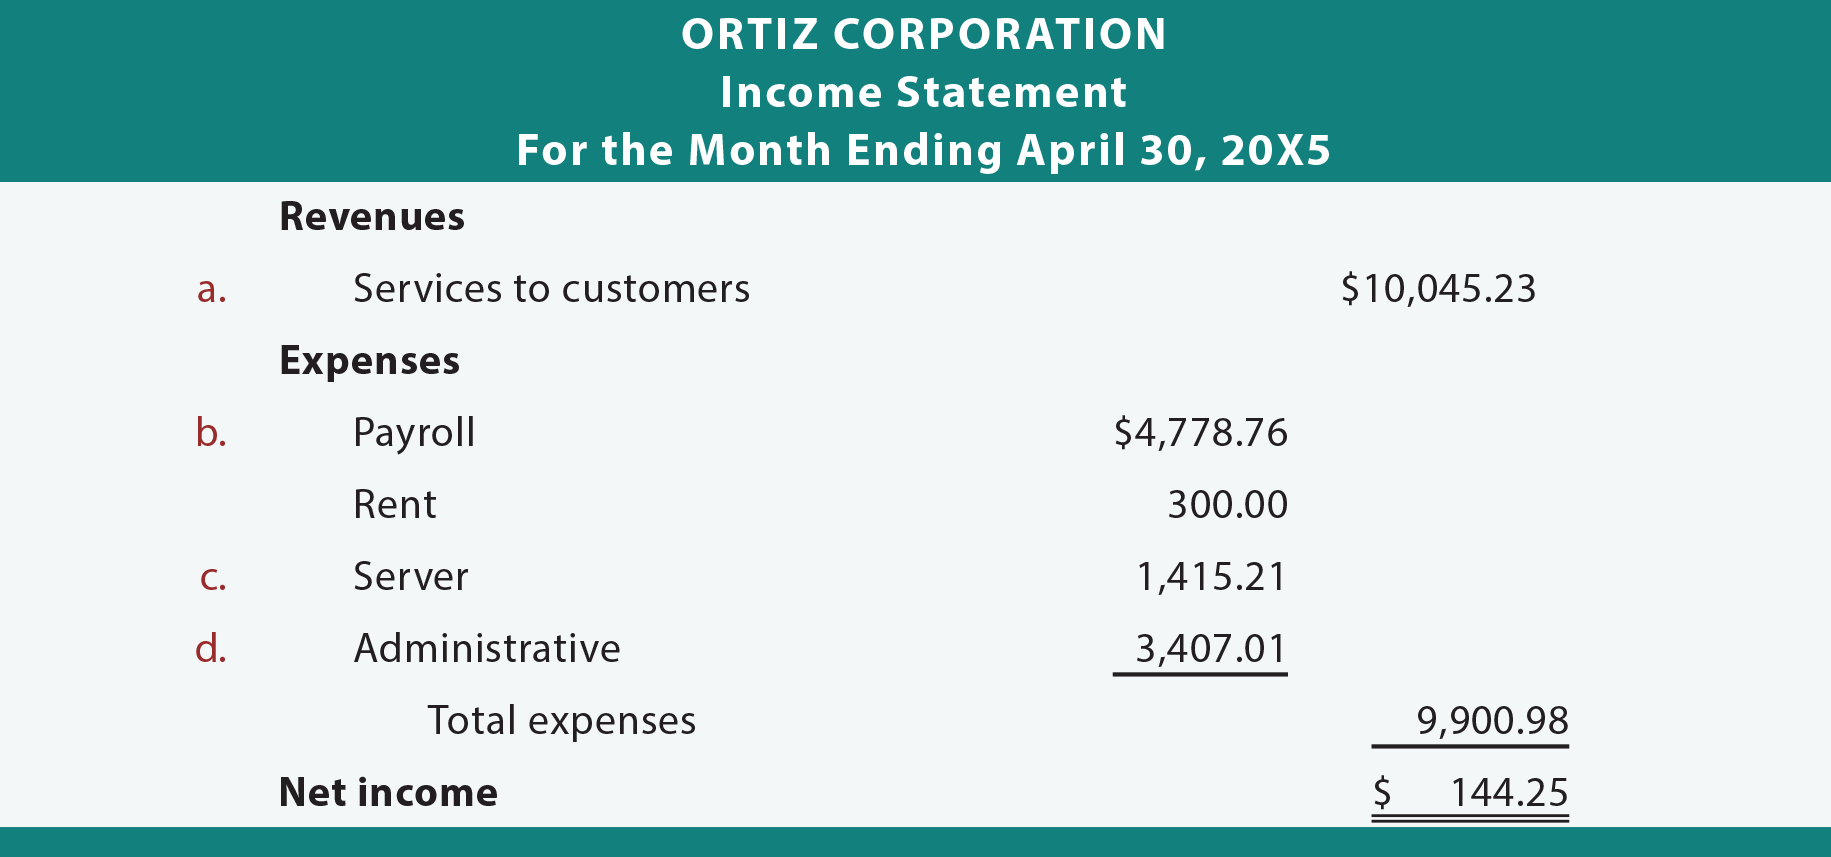 Ortiz Corporation income statement